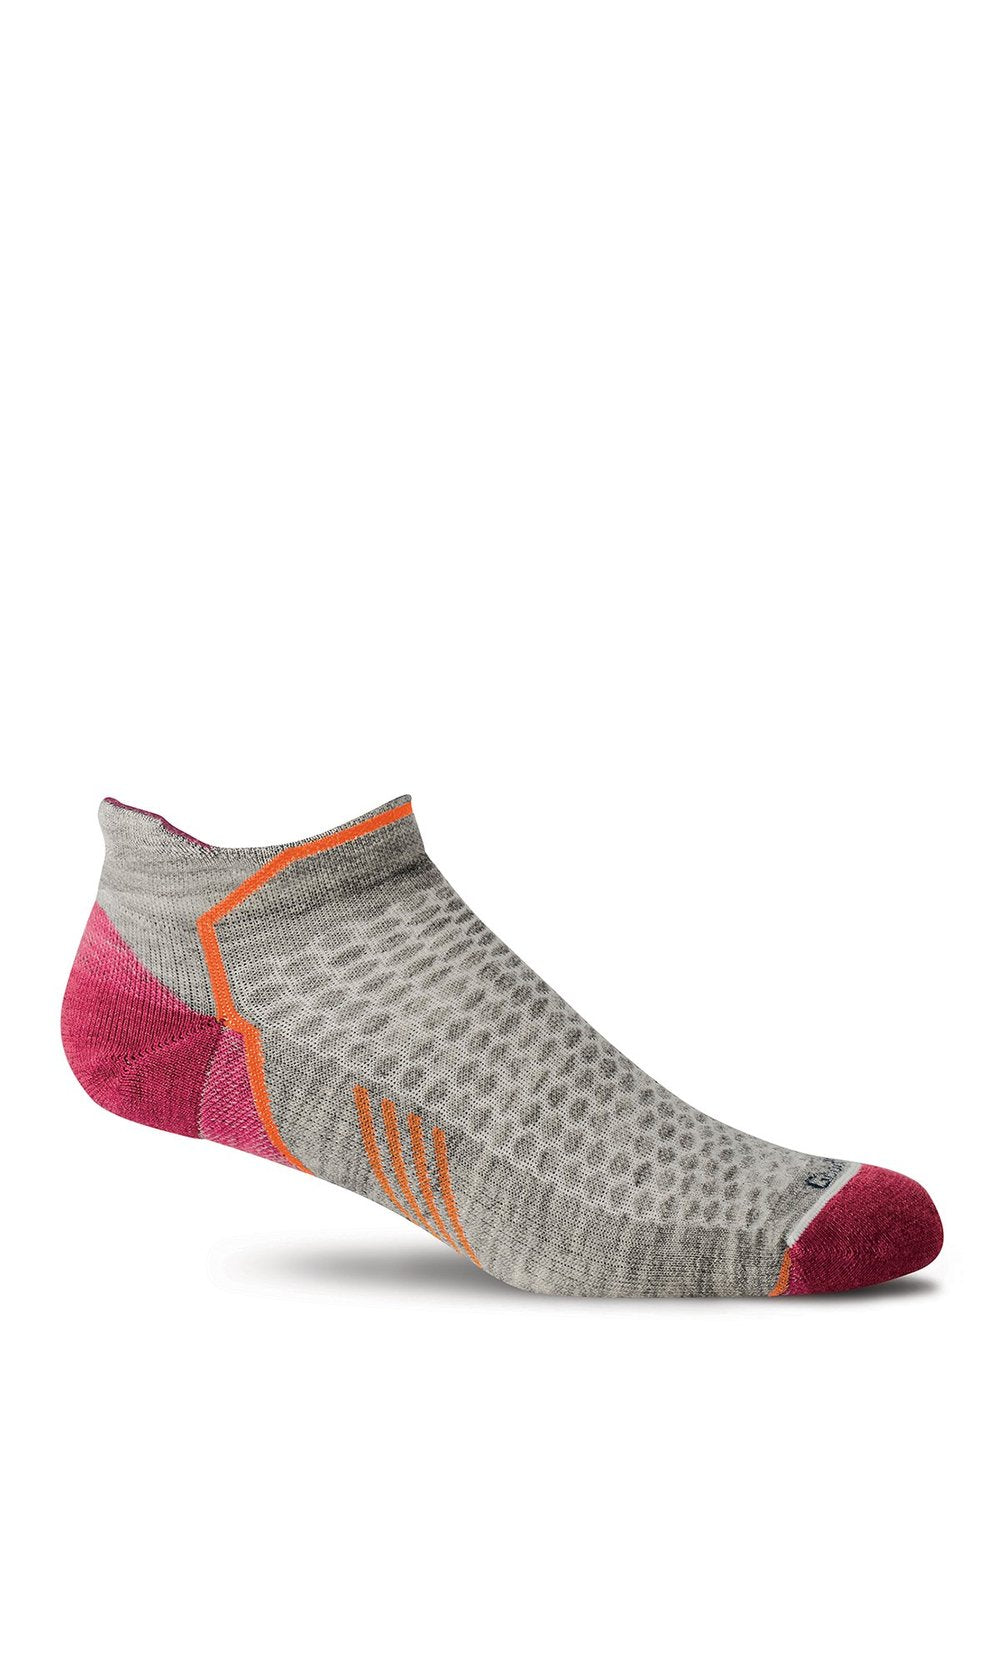 Sockwell Women's Fitness Incline Micro Compression Socks